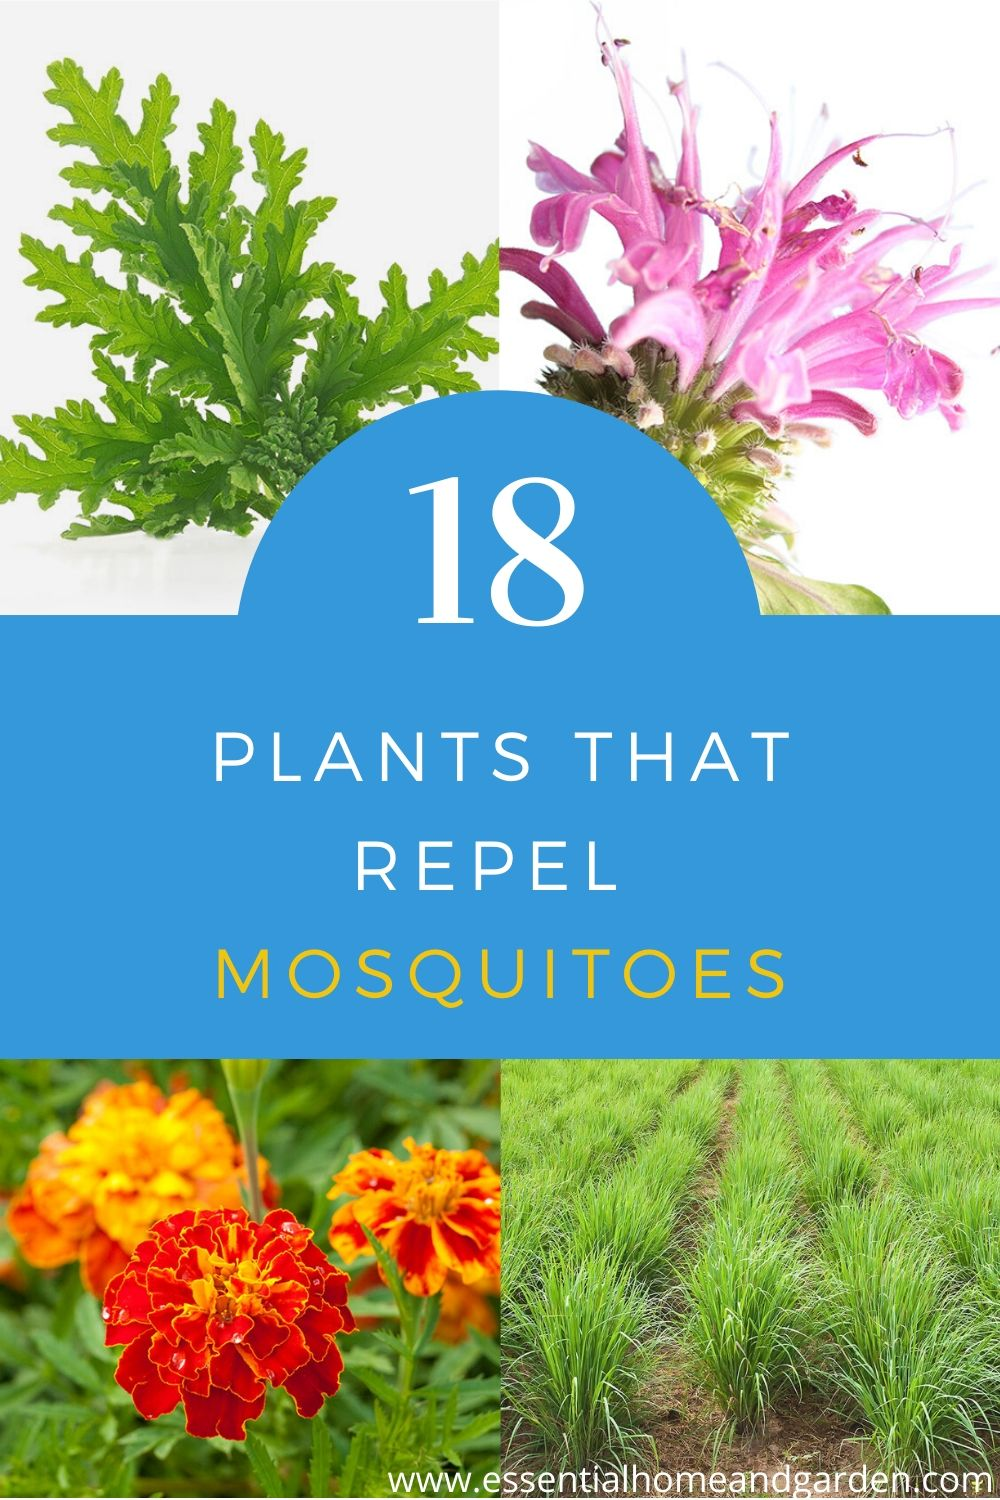 18 plants that repel mosquitoes